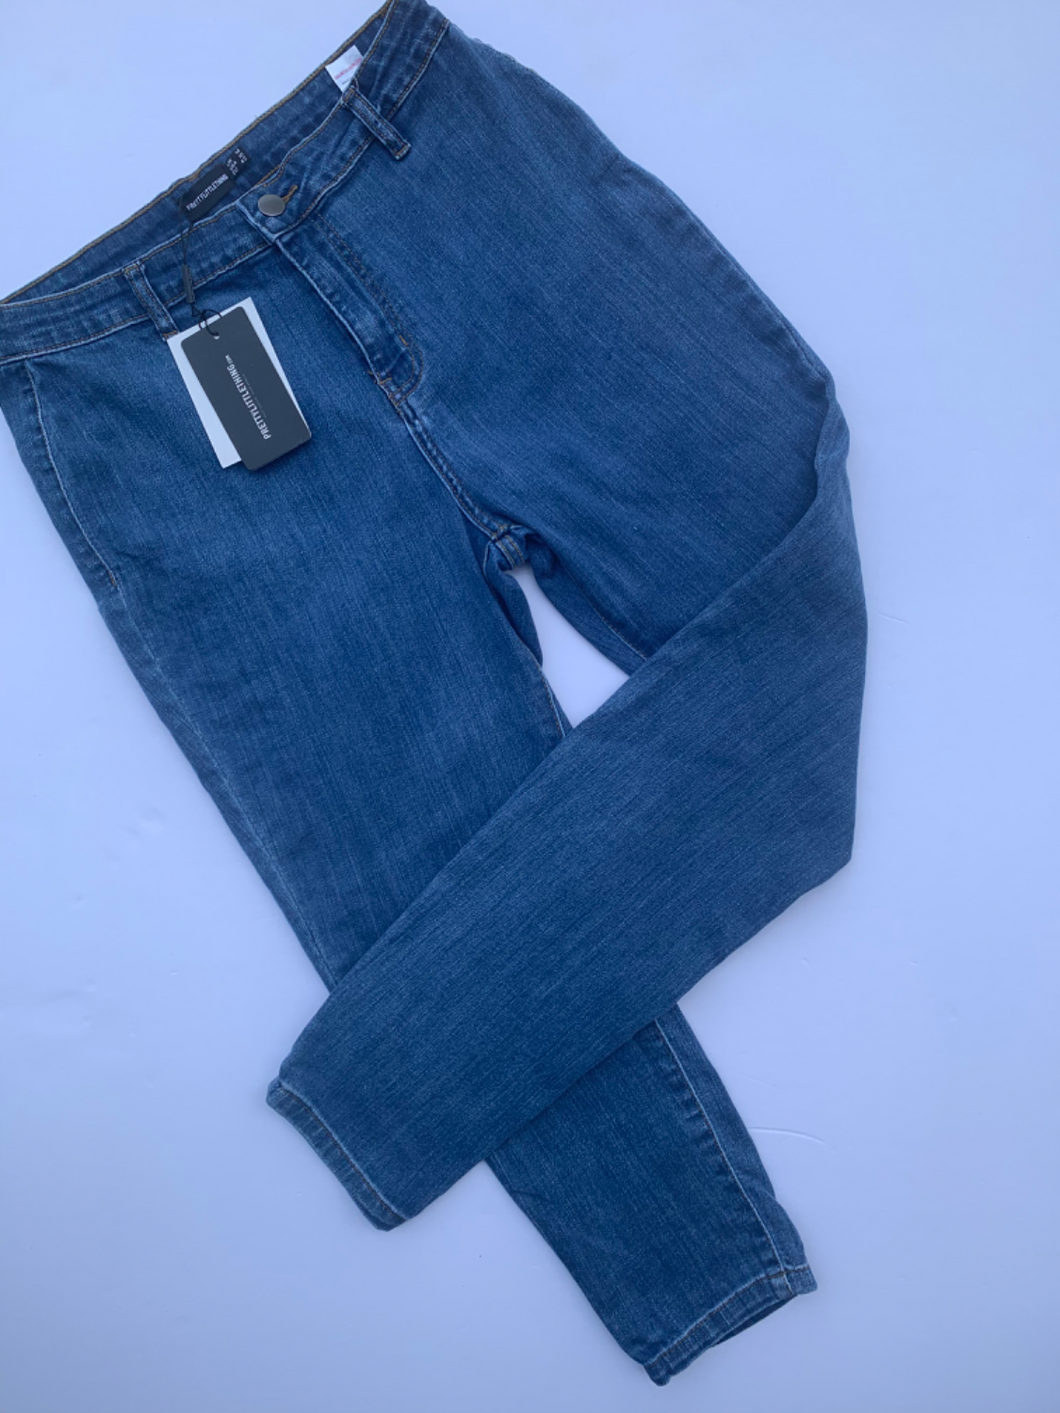 Pretty Little Things Denim Size 9/10 (30)